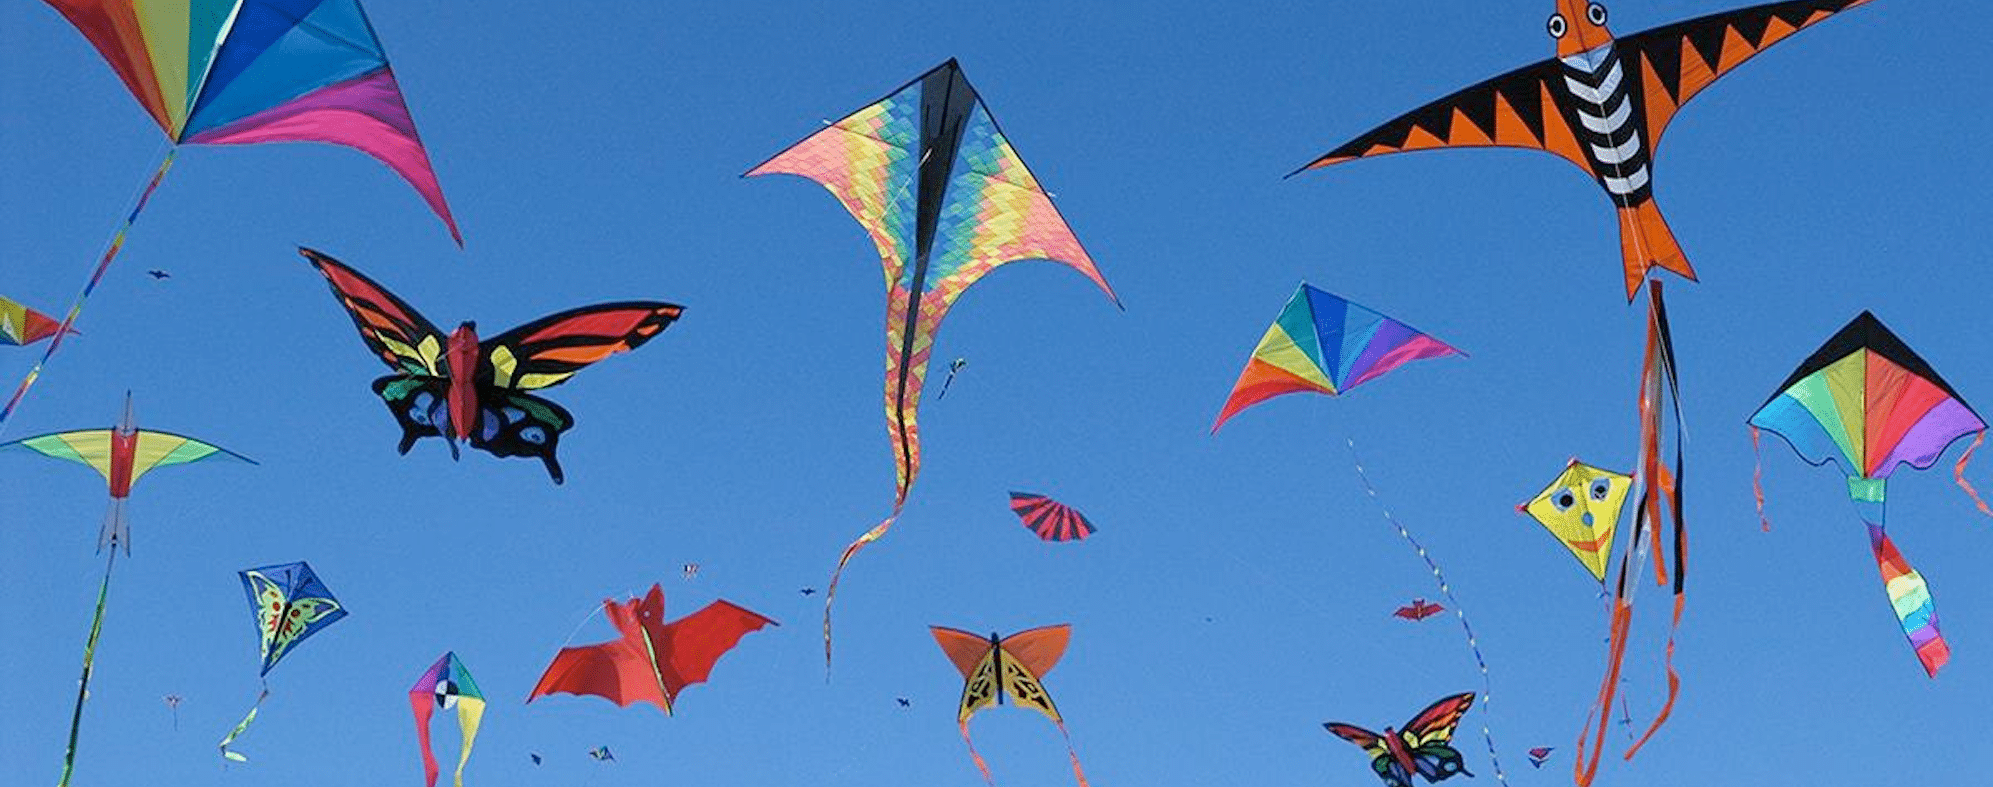 Spartanburg set to SOAR with International Kite Festival